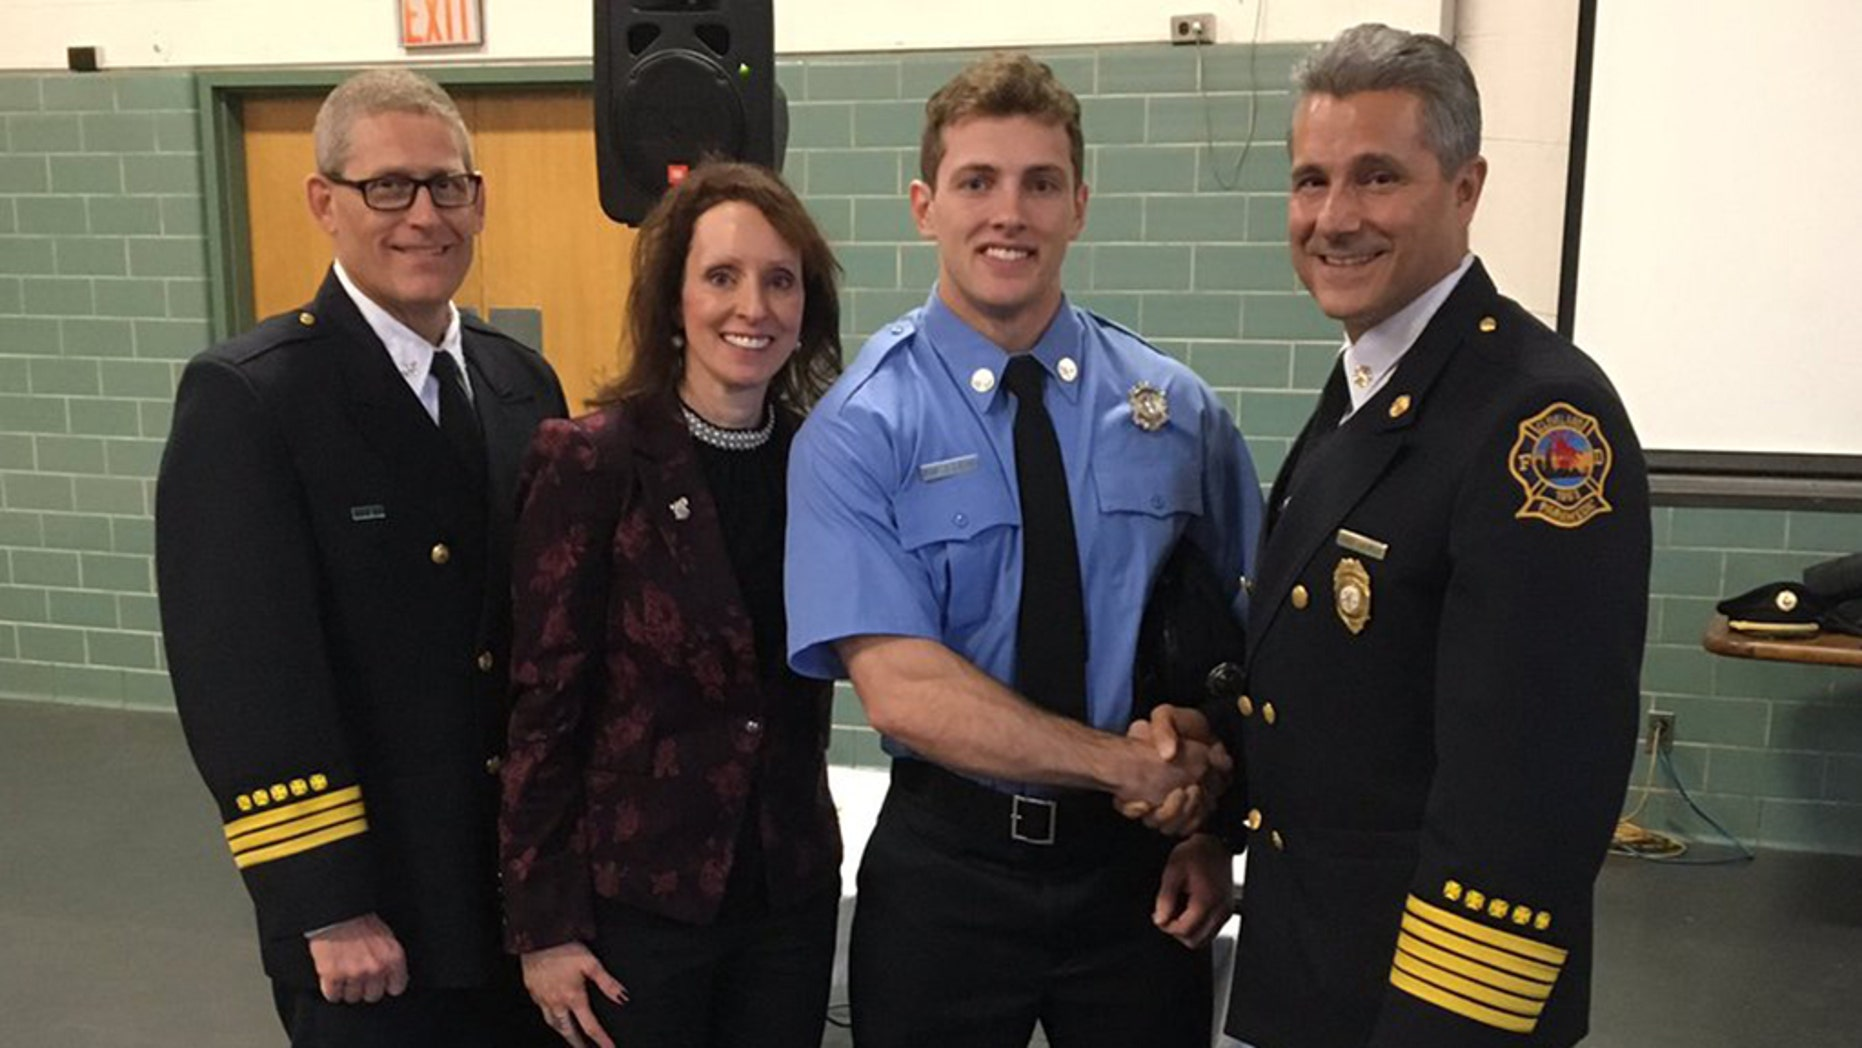 Justin Leon was one of 19 cadets from the 34th Fire Training Academy Class who took the oath of office at in Cleveland, Ohio, on Friday.